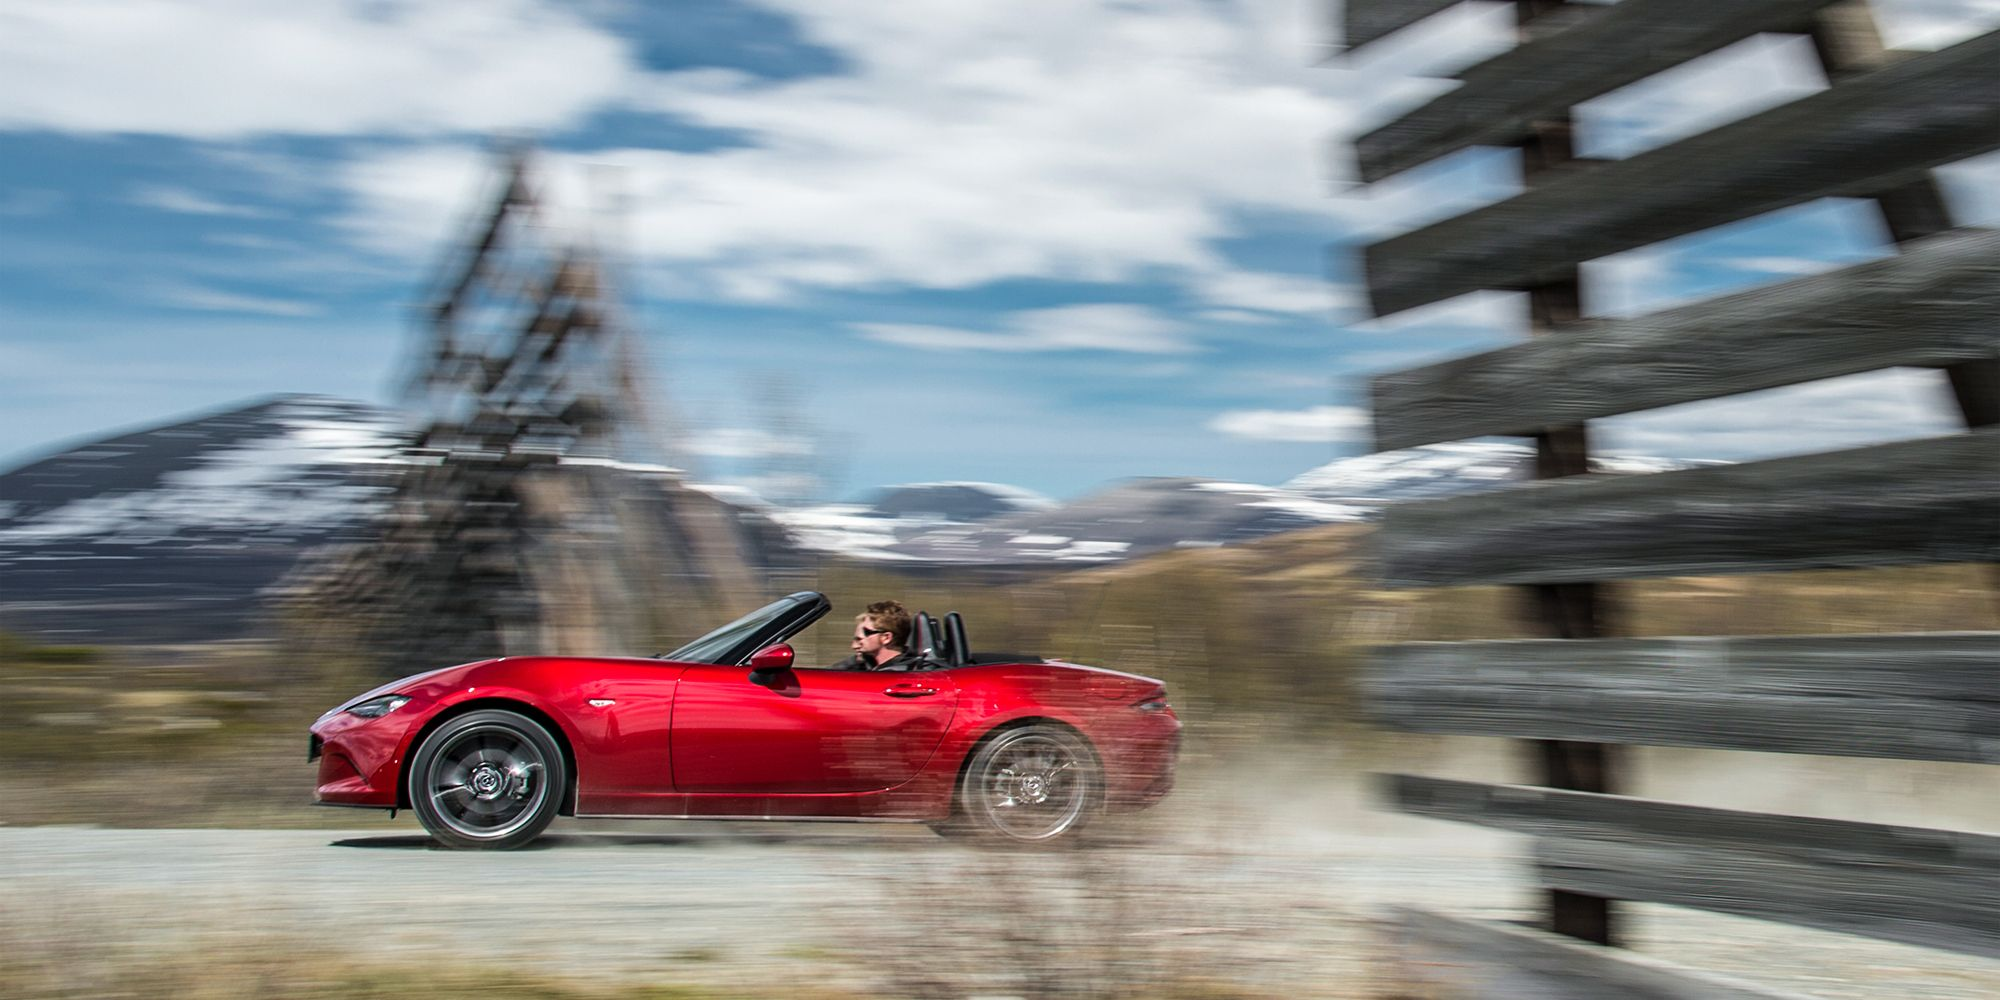 """<p>There's no arguing <a href=""""http://www.roadandtrack.com/new-cars/first-drives/news/a25829/2016-mazda-mx5-miata-us-model-first-drive/"""" target=""""_blank"""" data-tracking-id=""""recirc-text-link"""">the Miata</a> is a great car. Its combination of light weight, great handling, and open-top enjoyment make for what some consider the perfect automobile. However, its niche spot in the market means it sells in very small numbers. 2016 was no exception.</p>"""